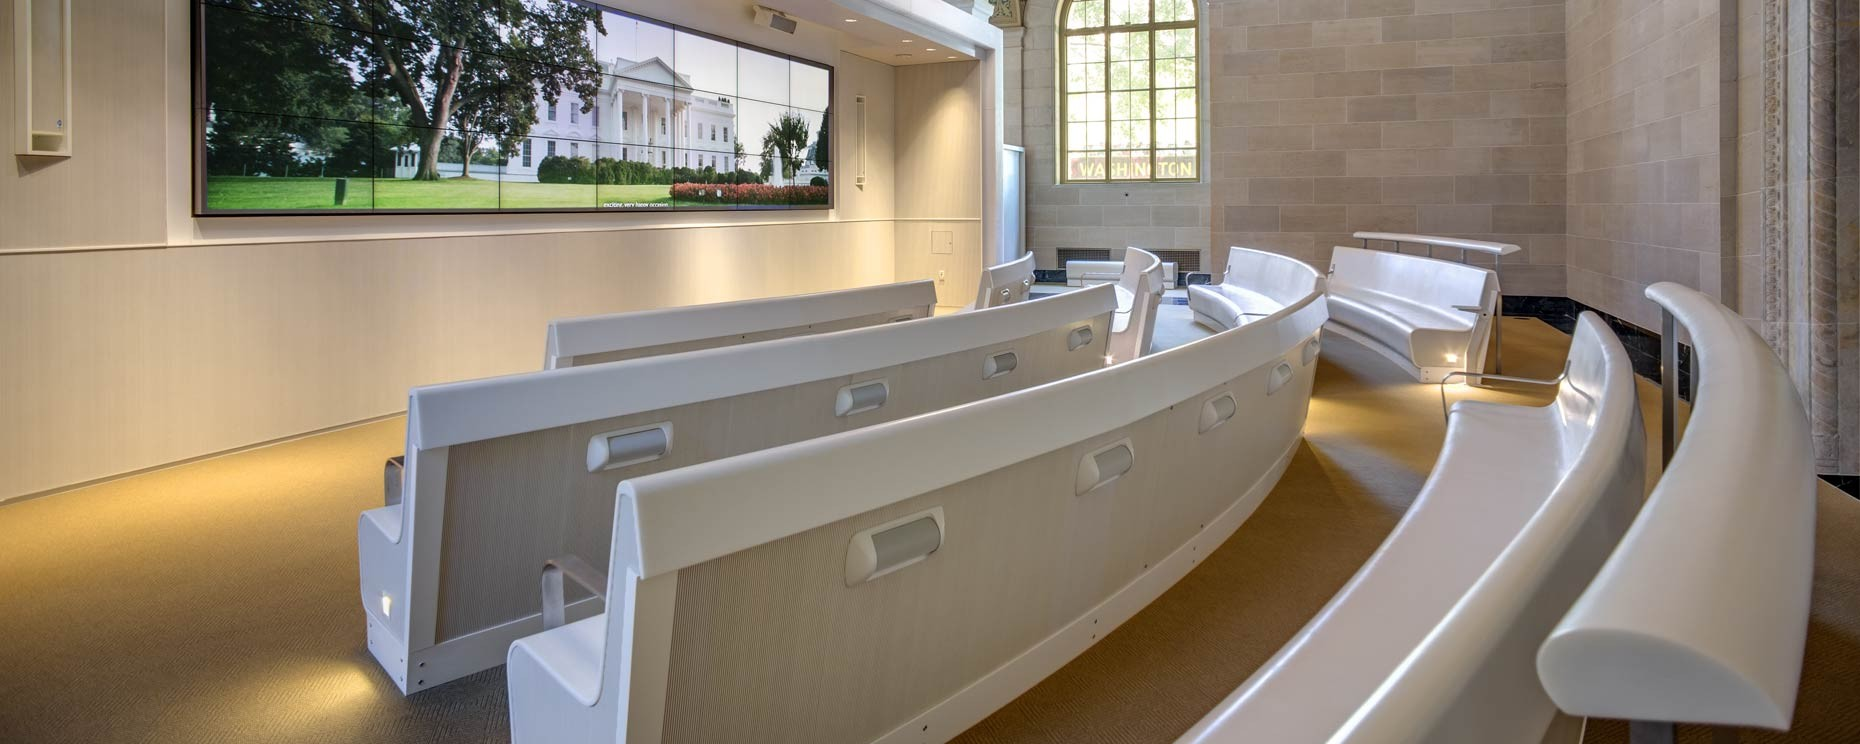 white house visitors center washington dc thermoformed curved benches material corian architecture